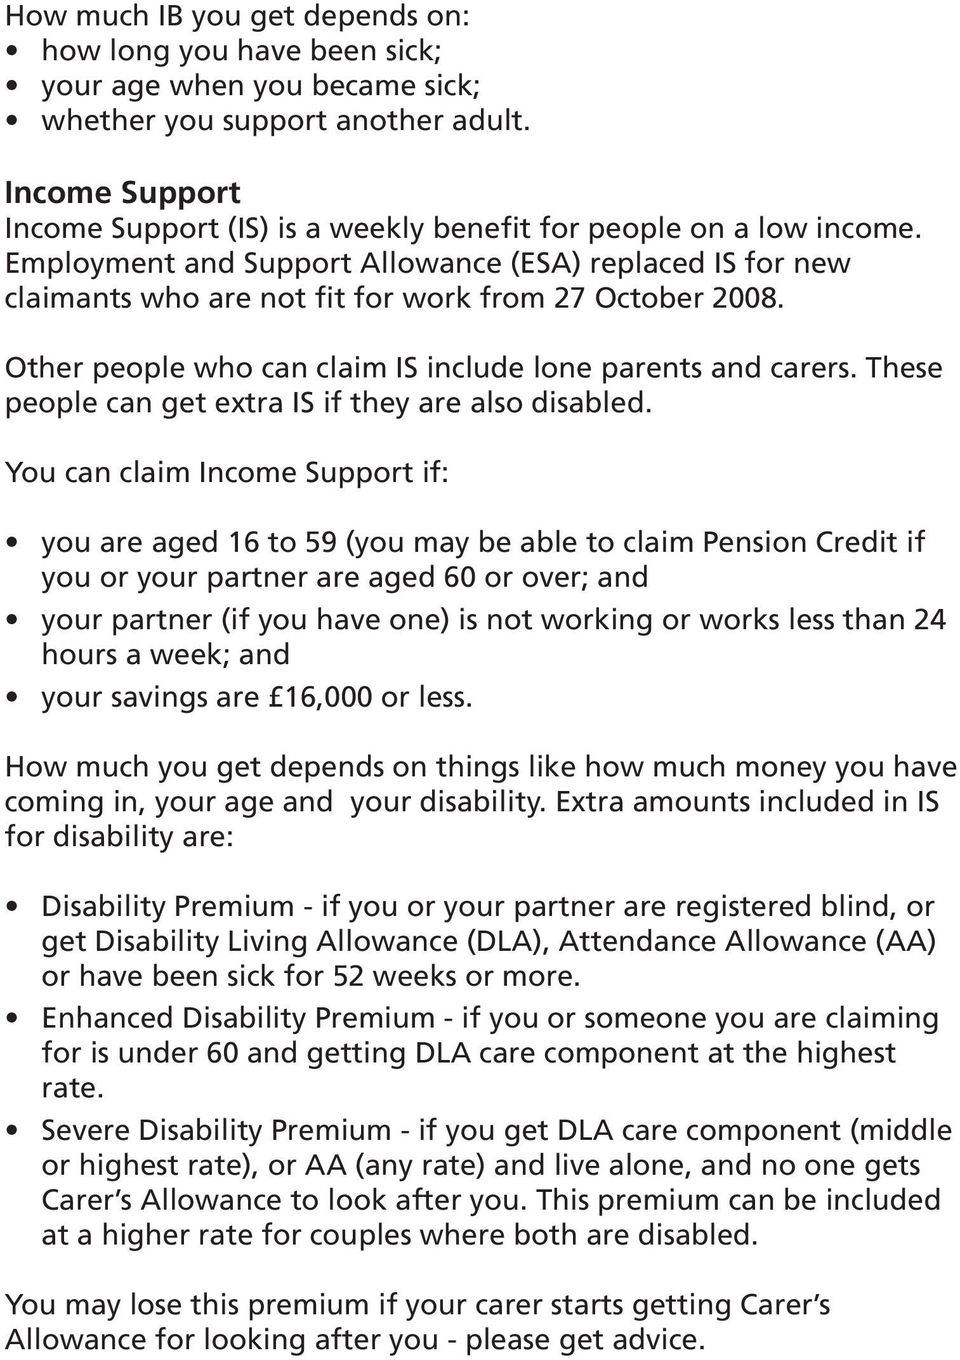 Other people who can claim IS include lone parents and carers. These people can get extra IS if they are also disabled.